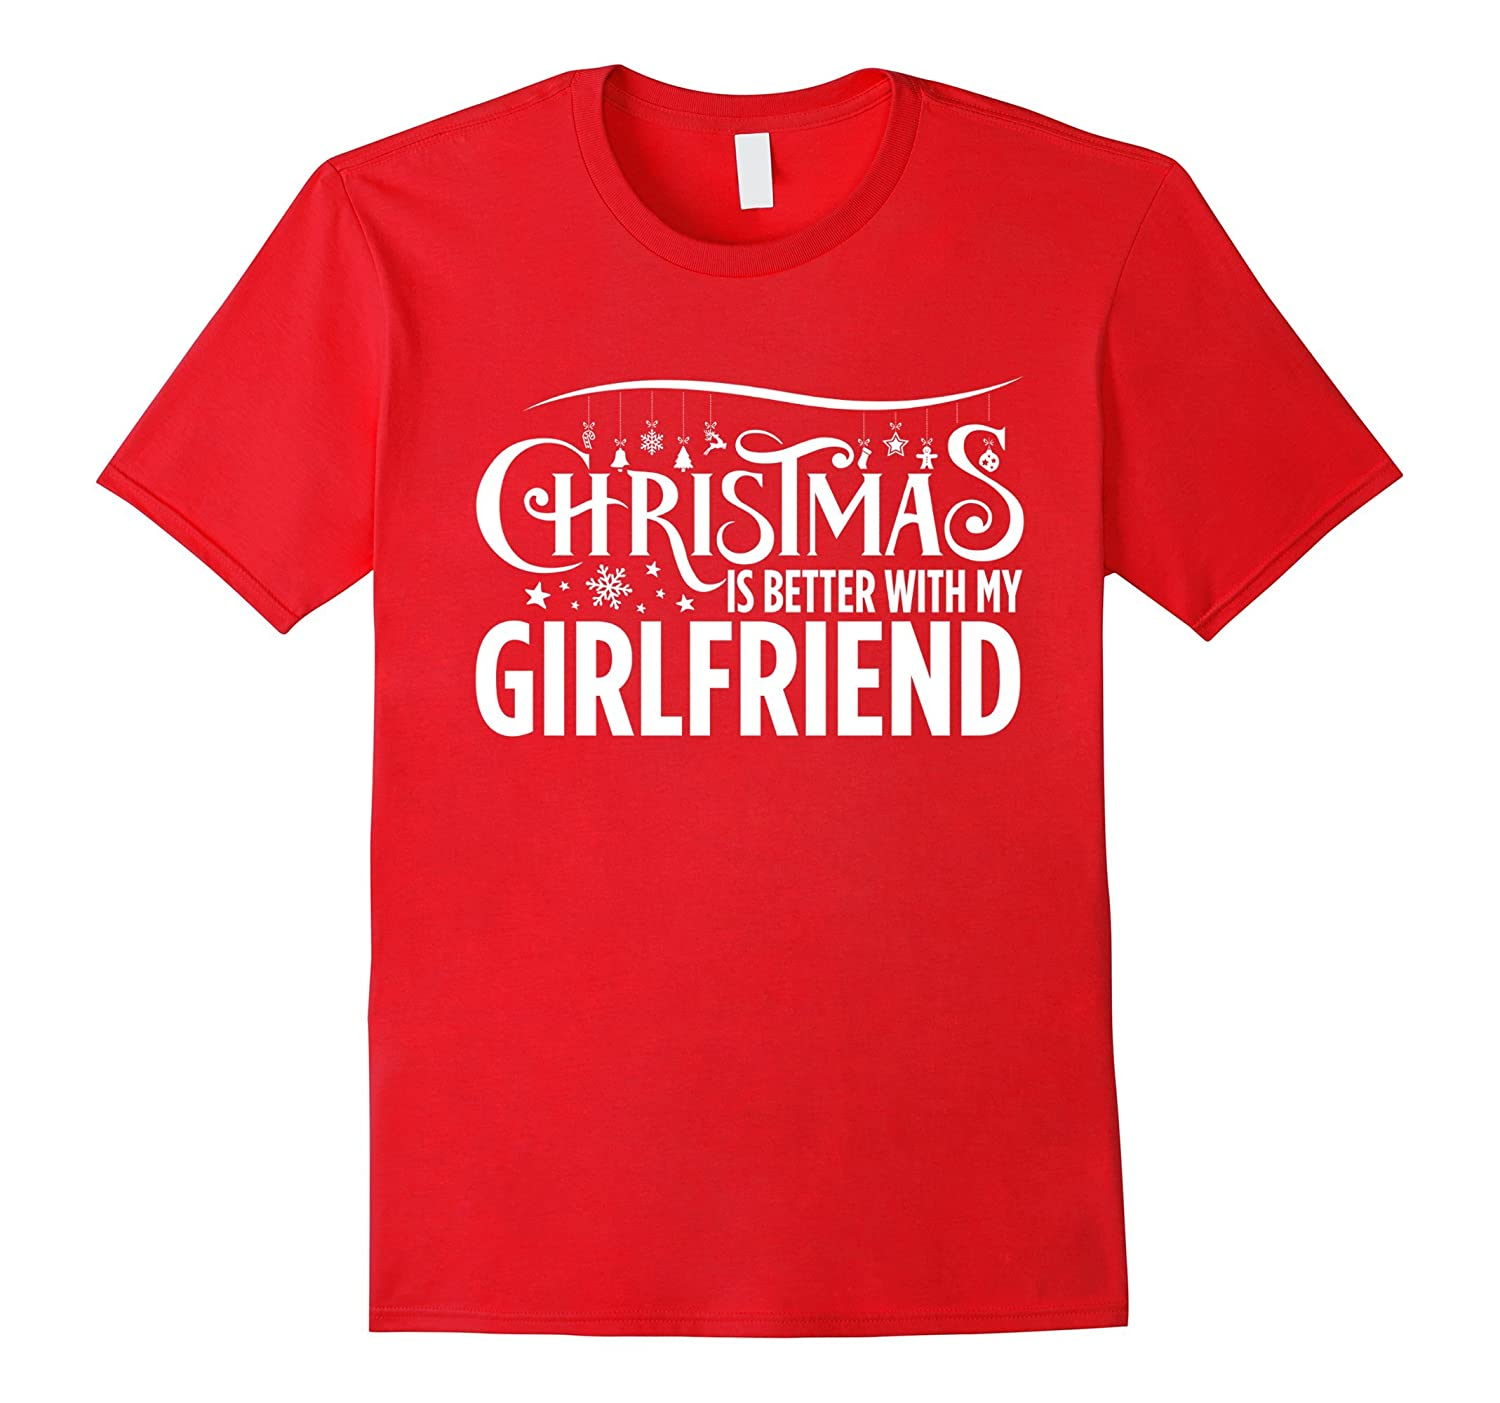 Christmas is Better with my Girlfriend Family T-Shirt